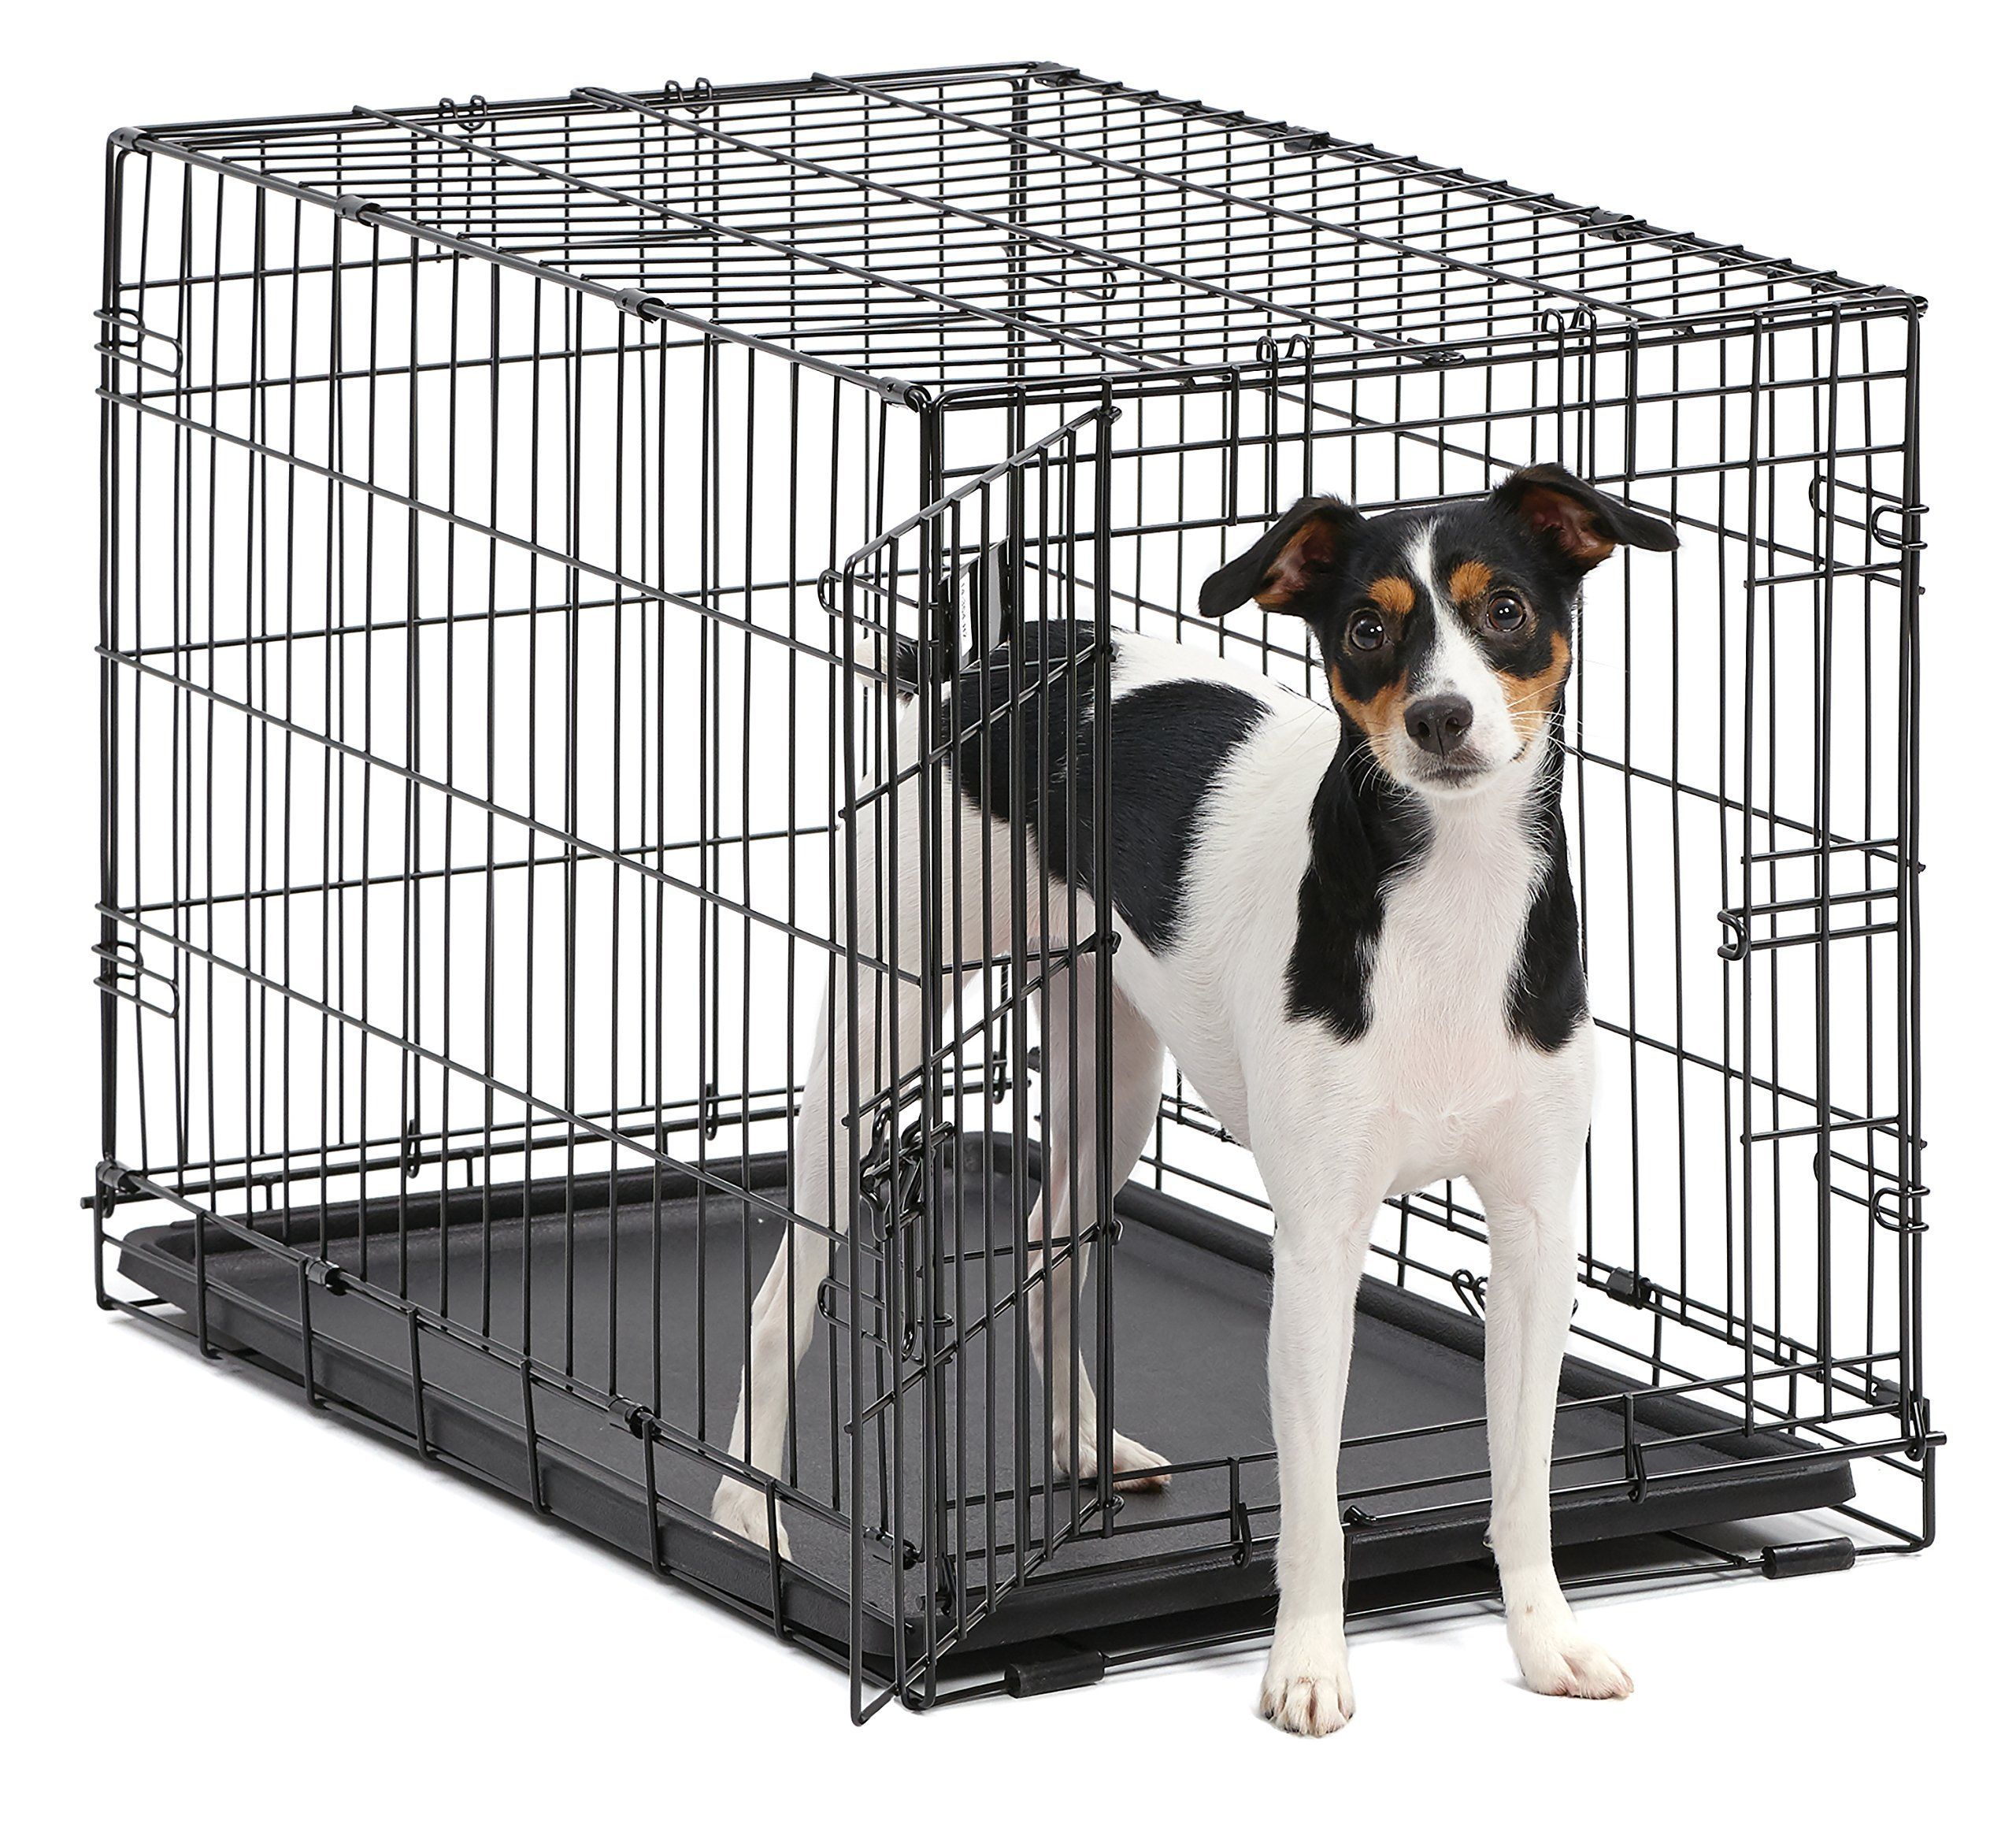 Dog Crate | MidWest iCrate 30 Inch Folding Metal Dog Crate w/ Divider Panel,| Medium Dog, Black by MidWest Homes for Pets